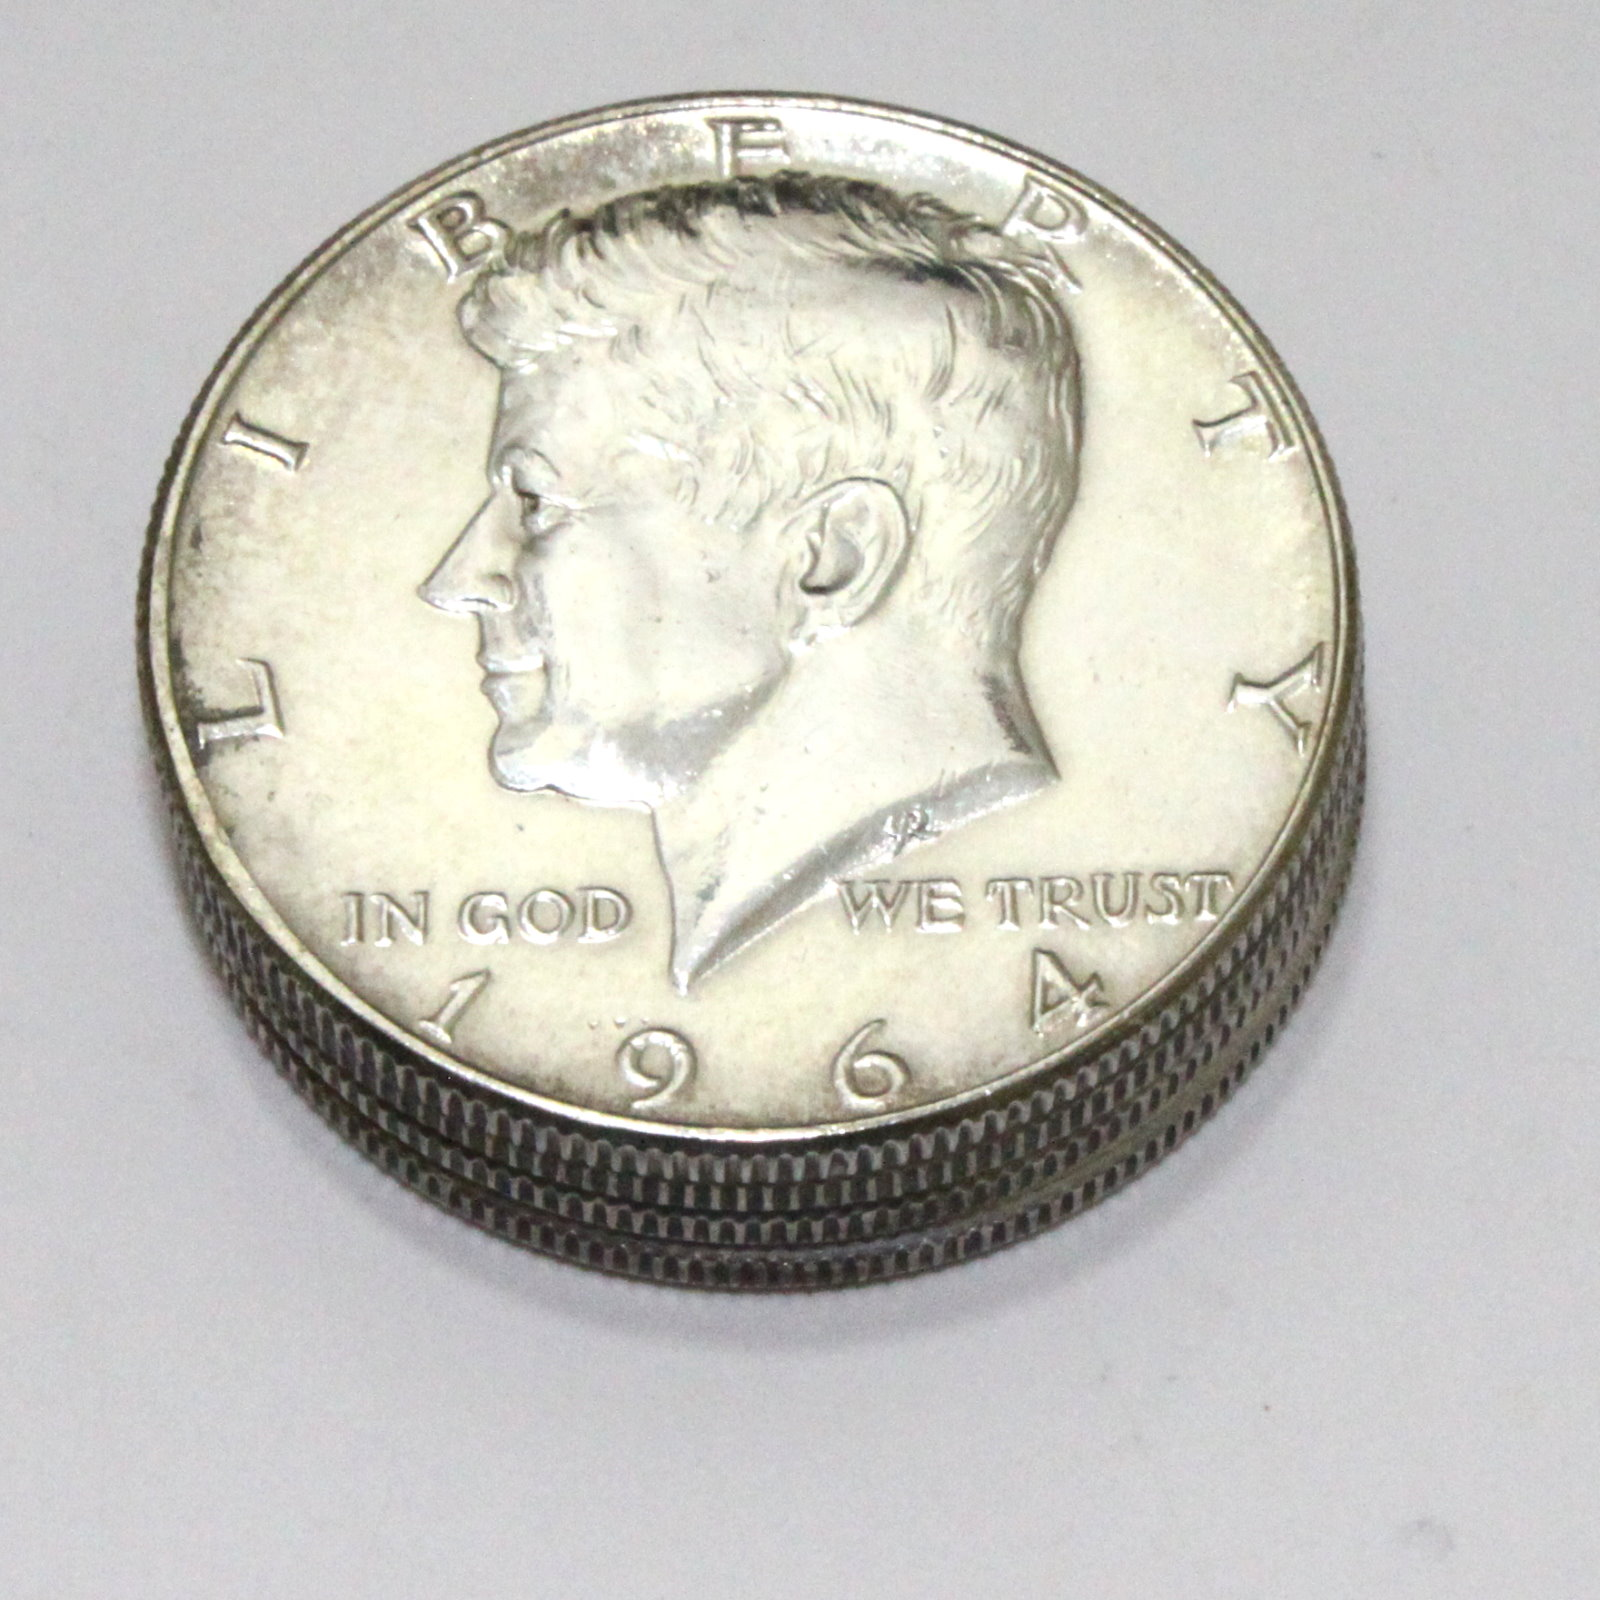 Cylinder and Coin Set with 1964 Silver Kennedys by Frank Starsinic, et al